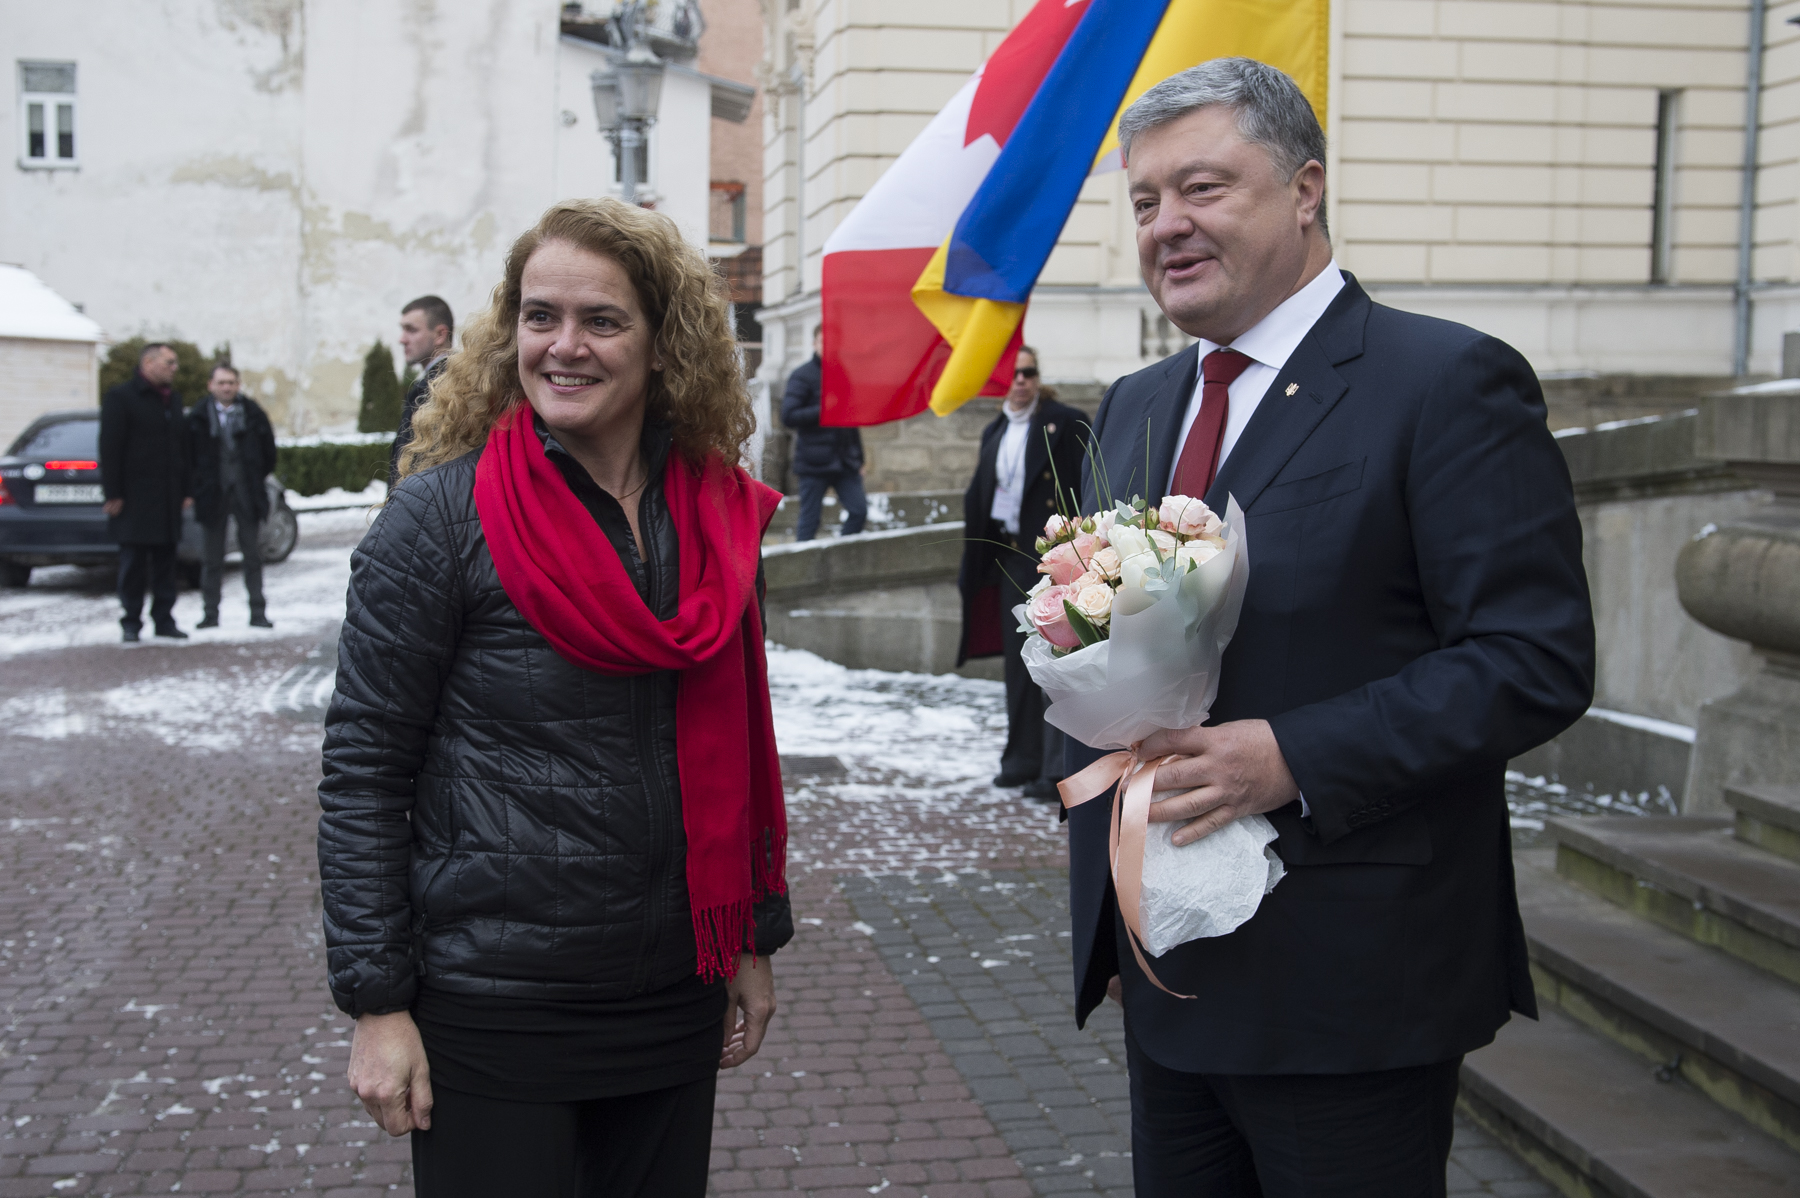 Later, Her Excellency visited Potocki Palace, where she met with His Excellency Petro Poroshenko, President of Ukraine.